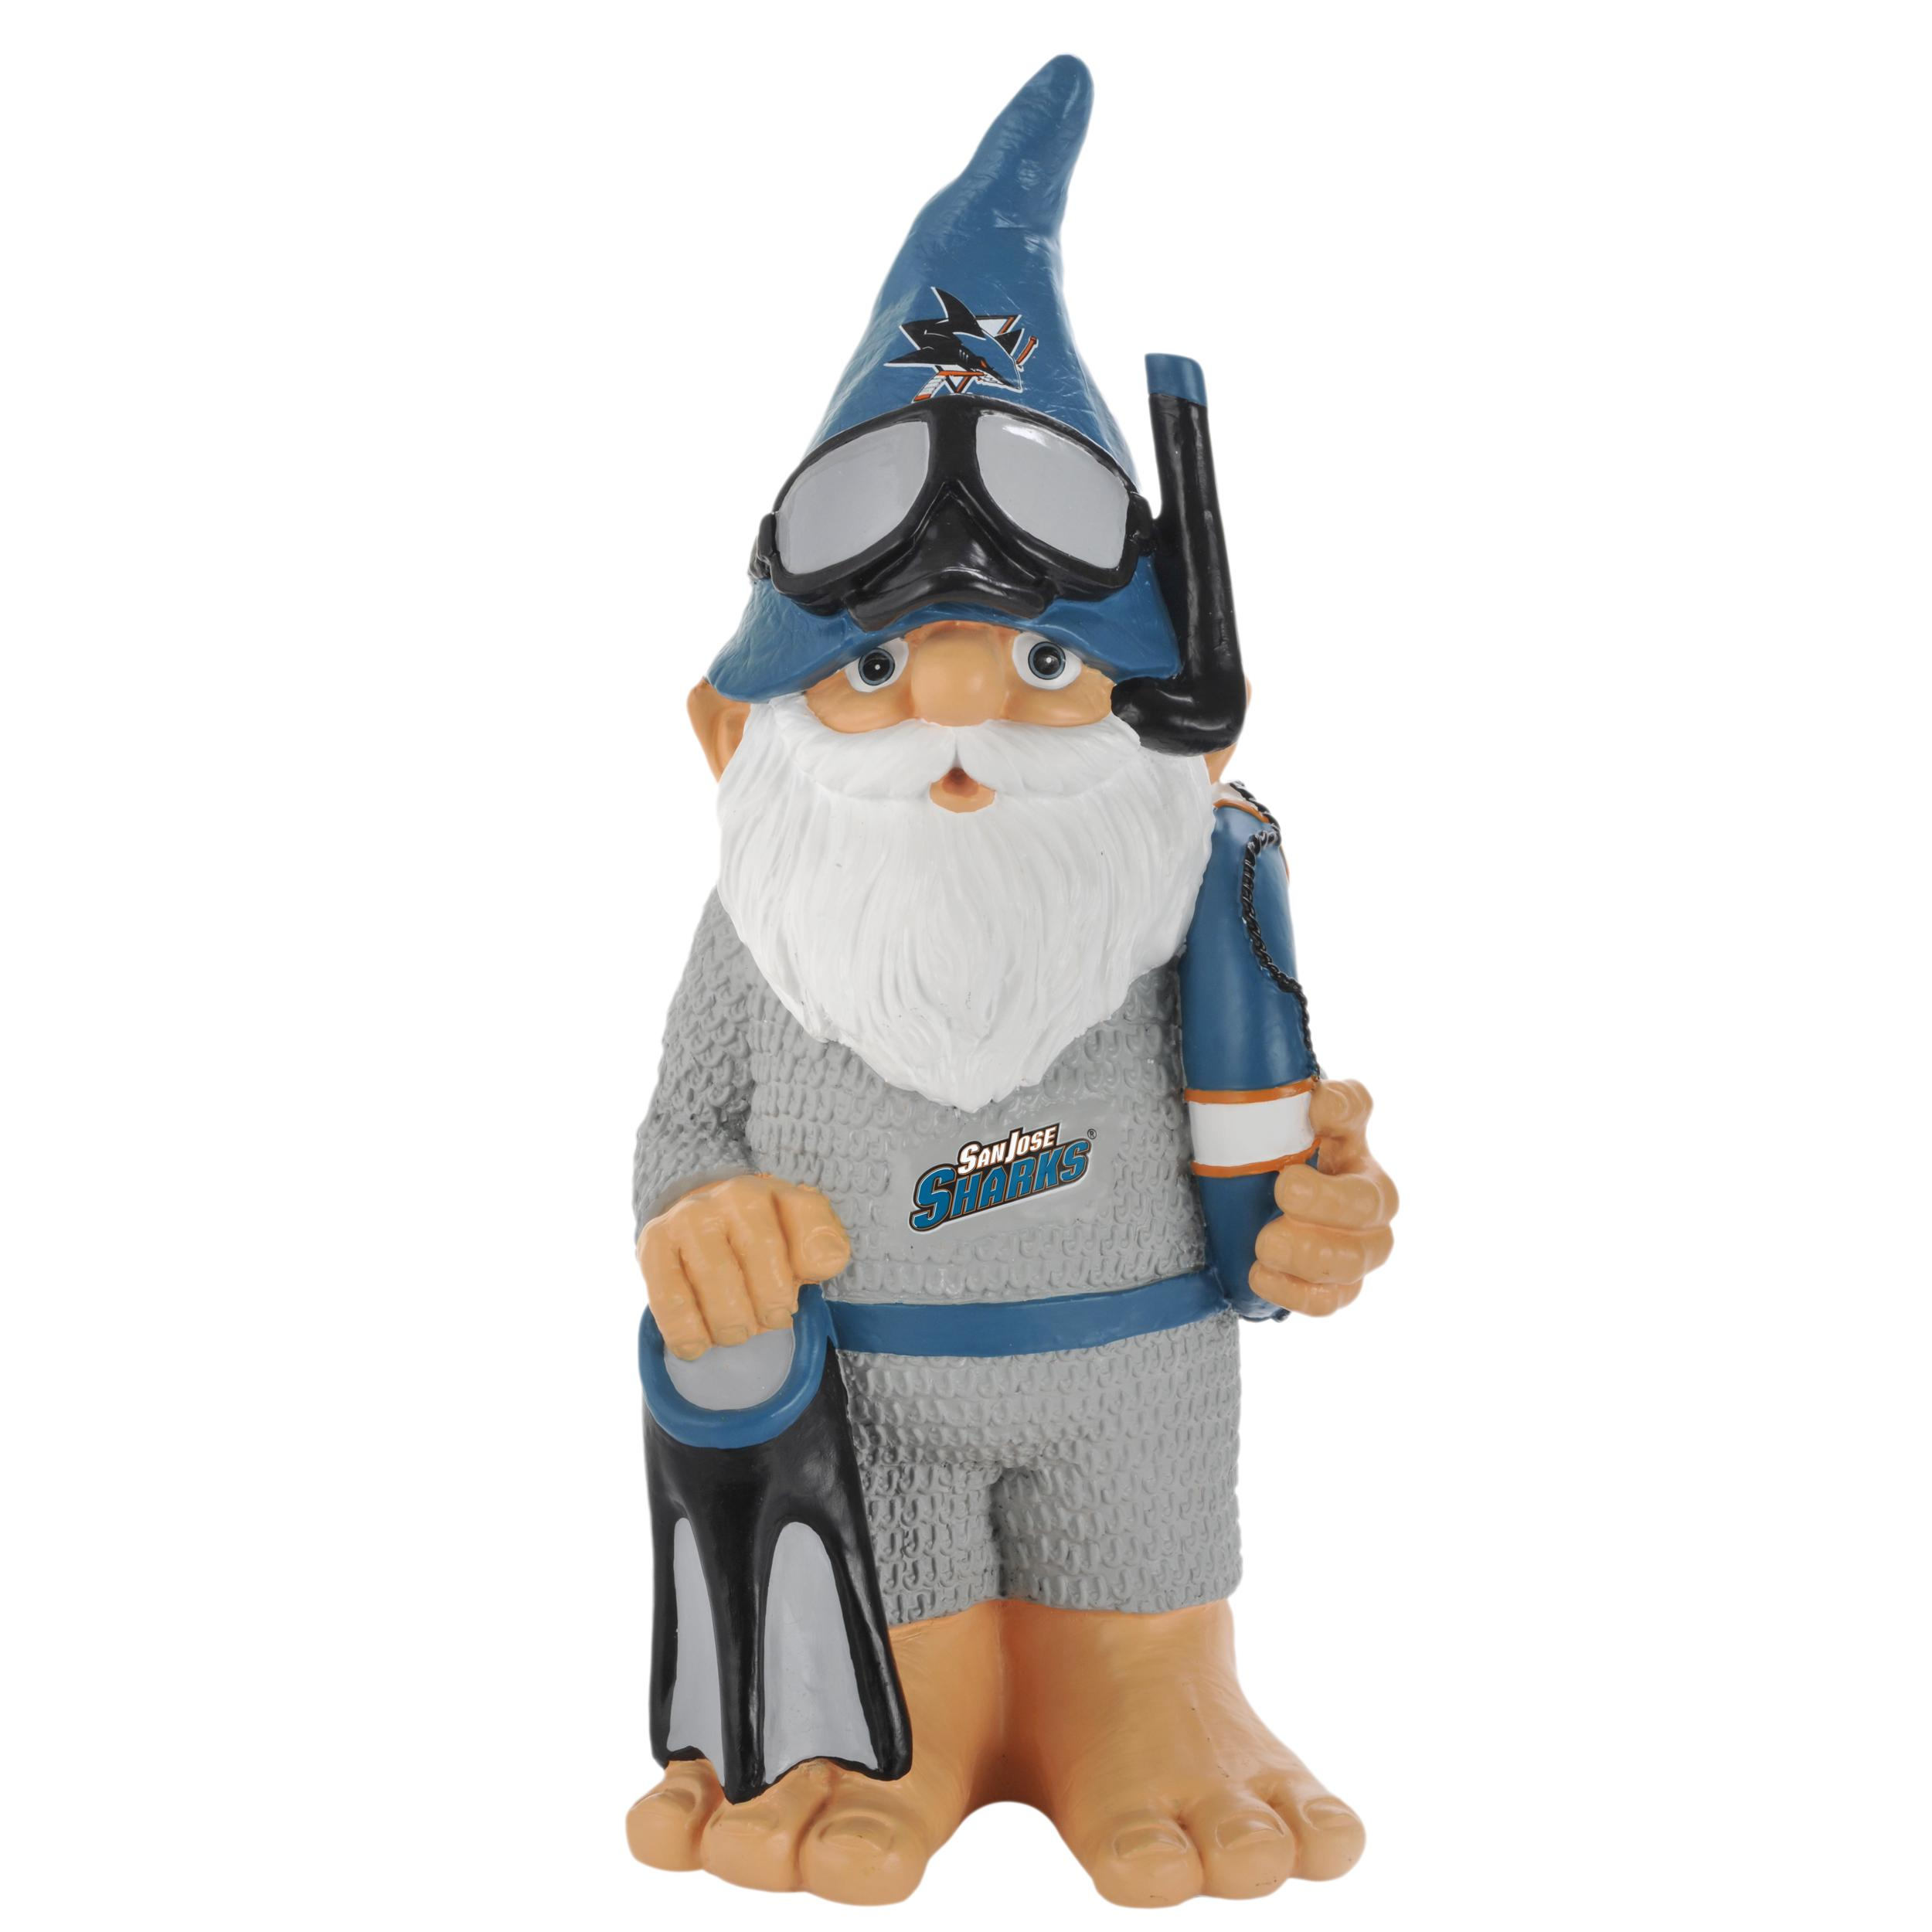 San Jose Sharks 11-inch Thematic Garden Gnome - Thumbnail 1